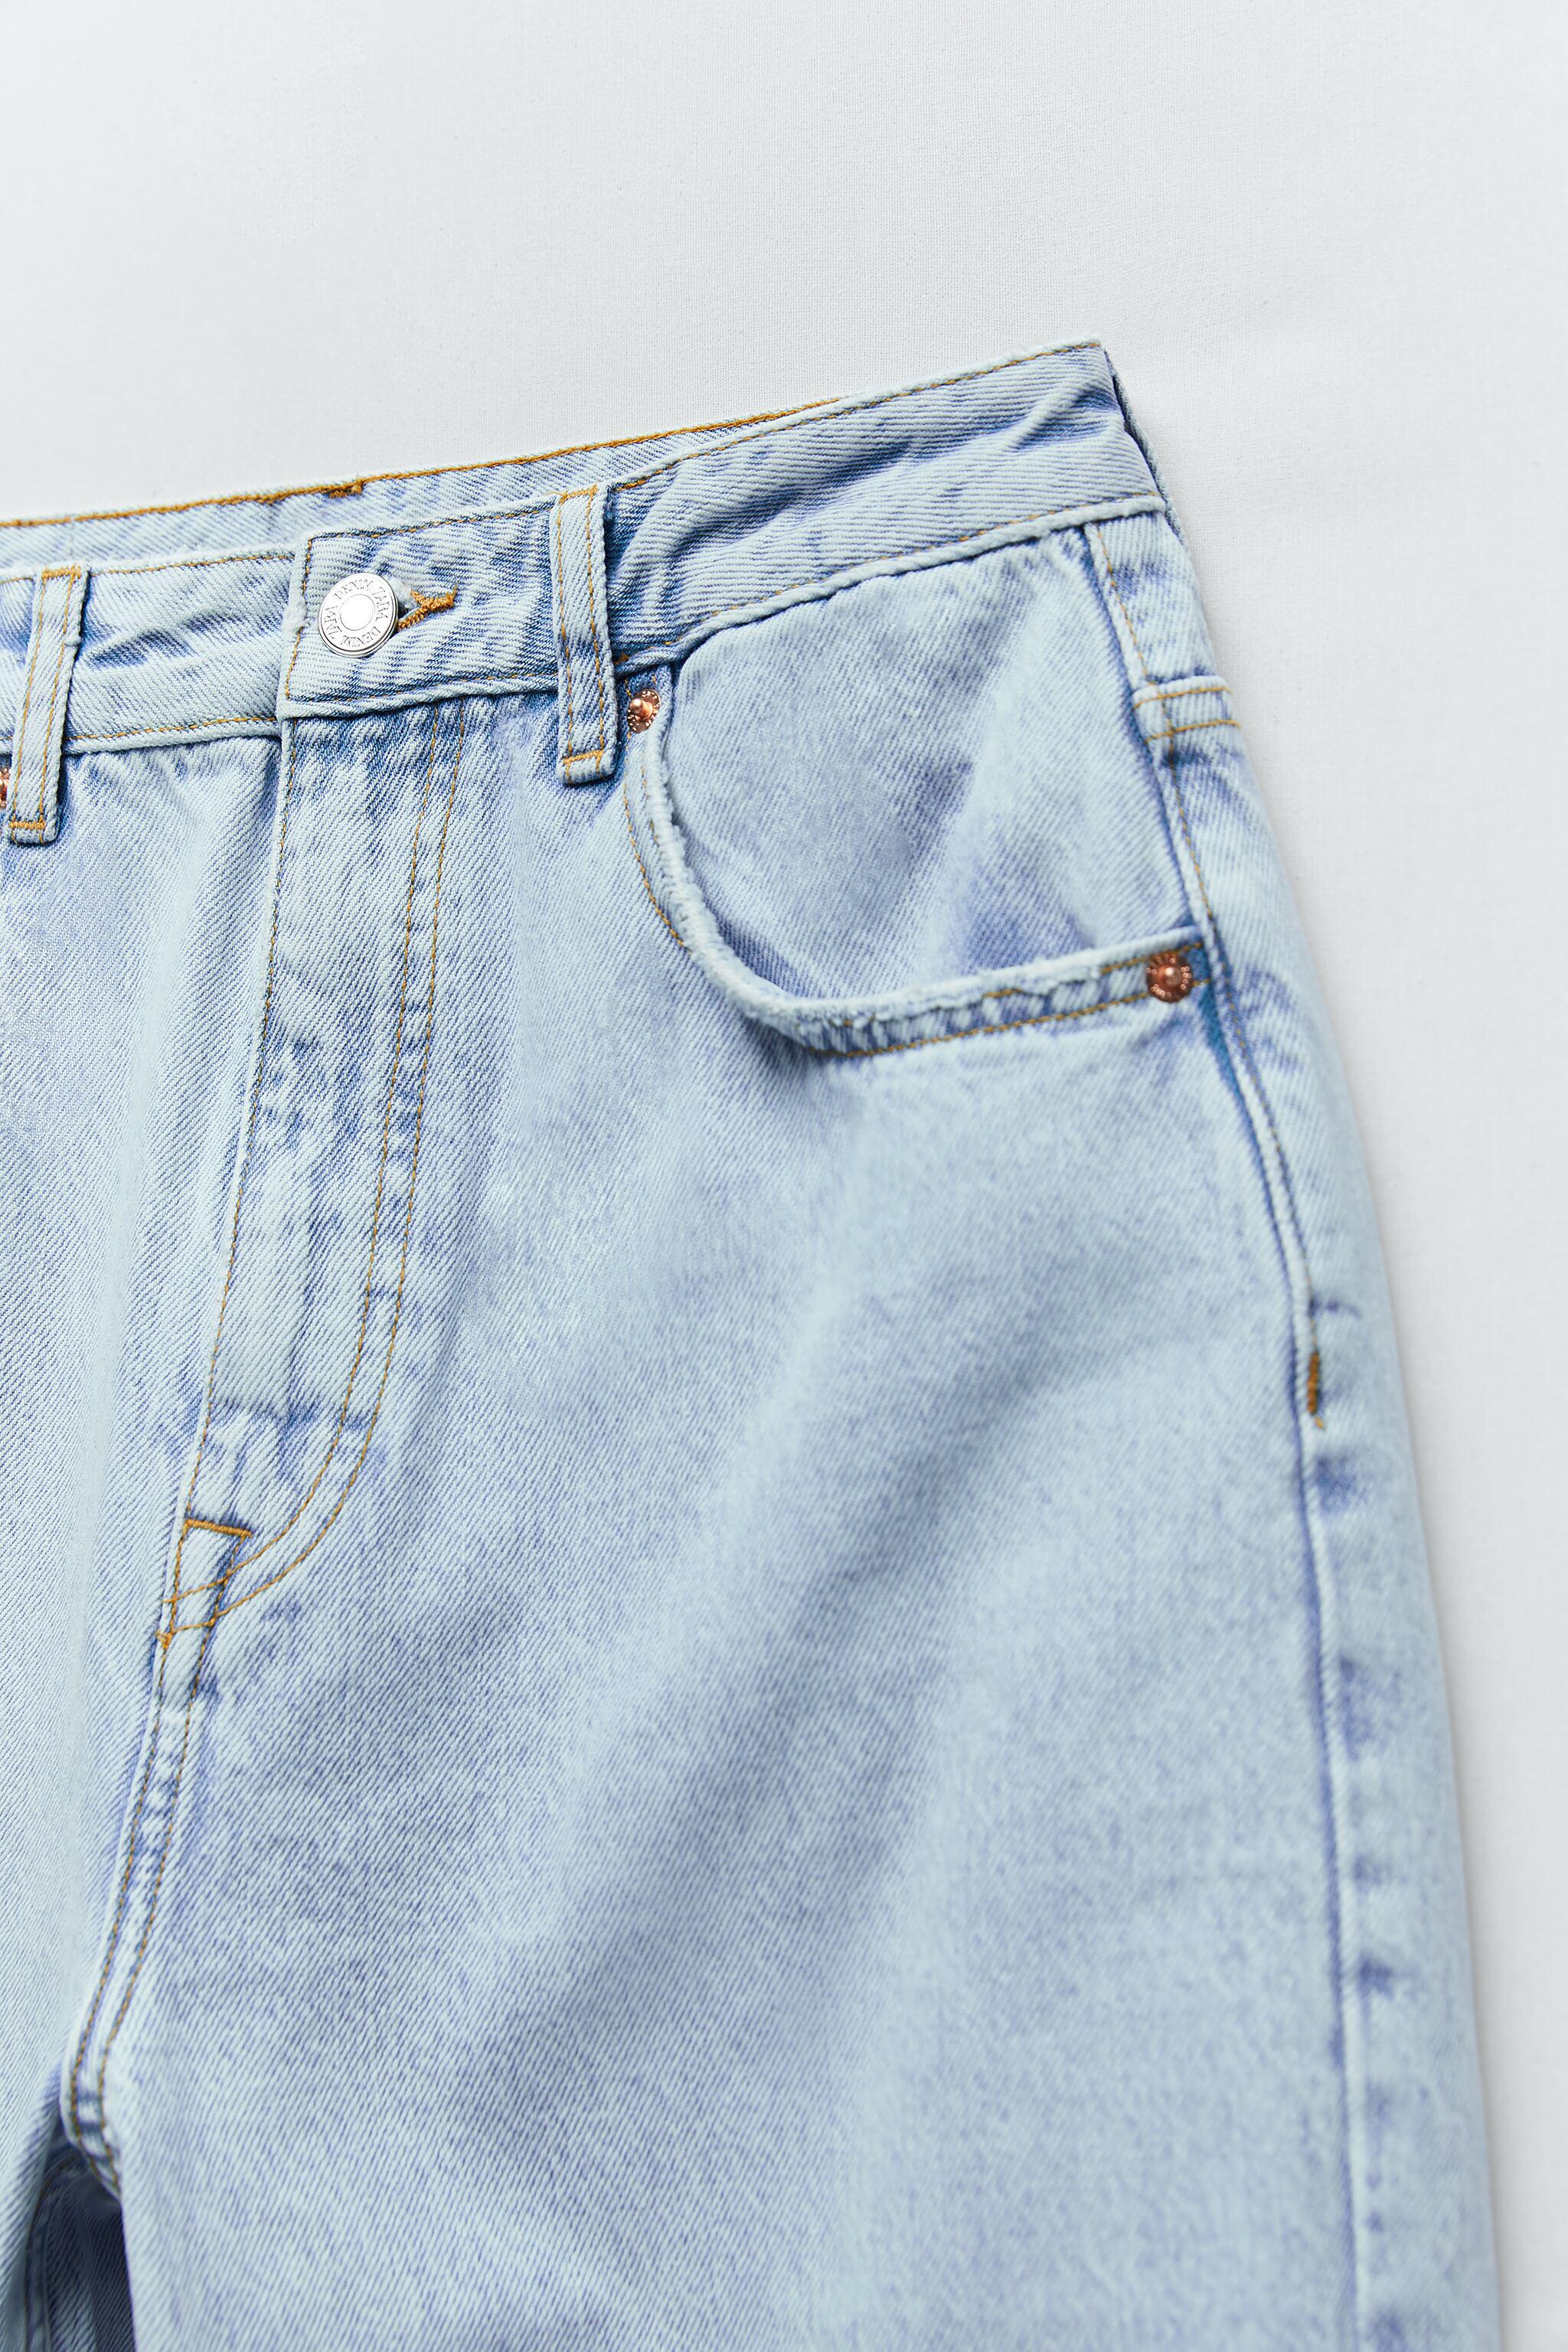 Z1975 HIGH RISE STRAIGHT JEANS 2